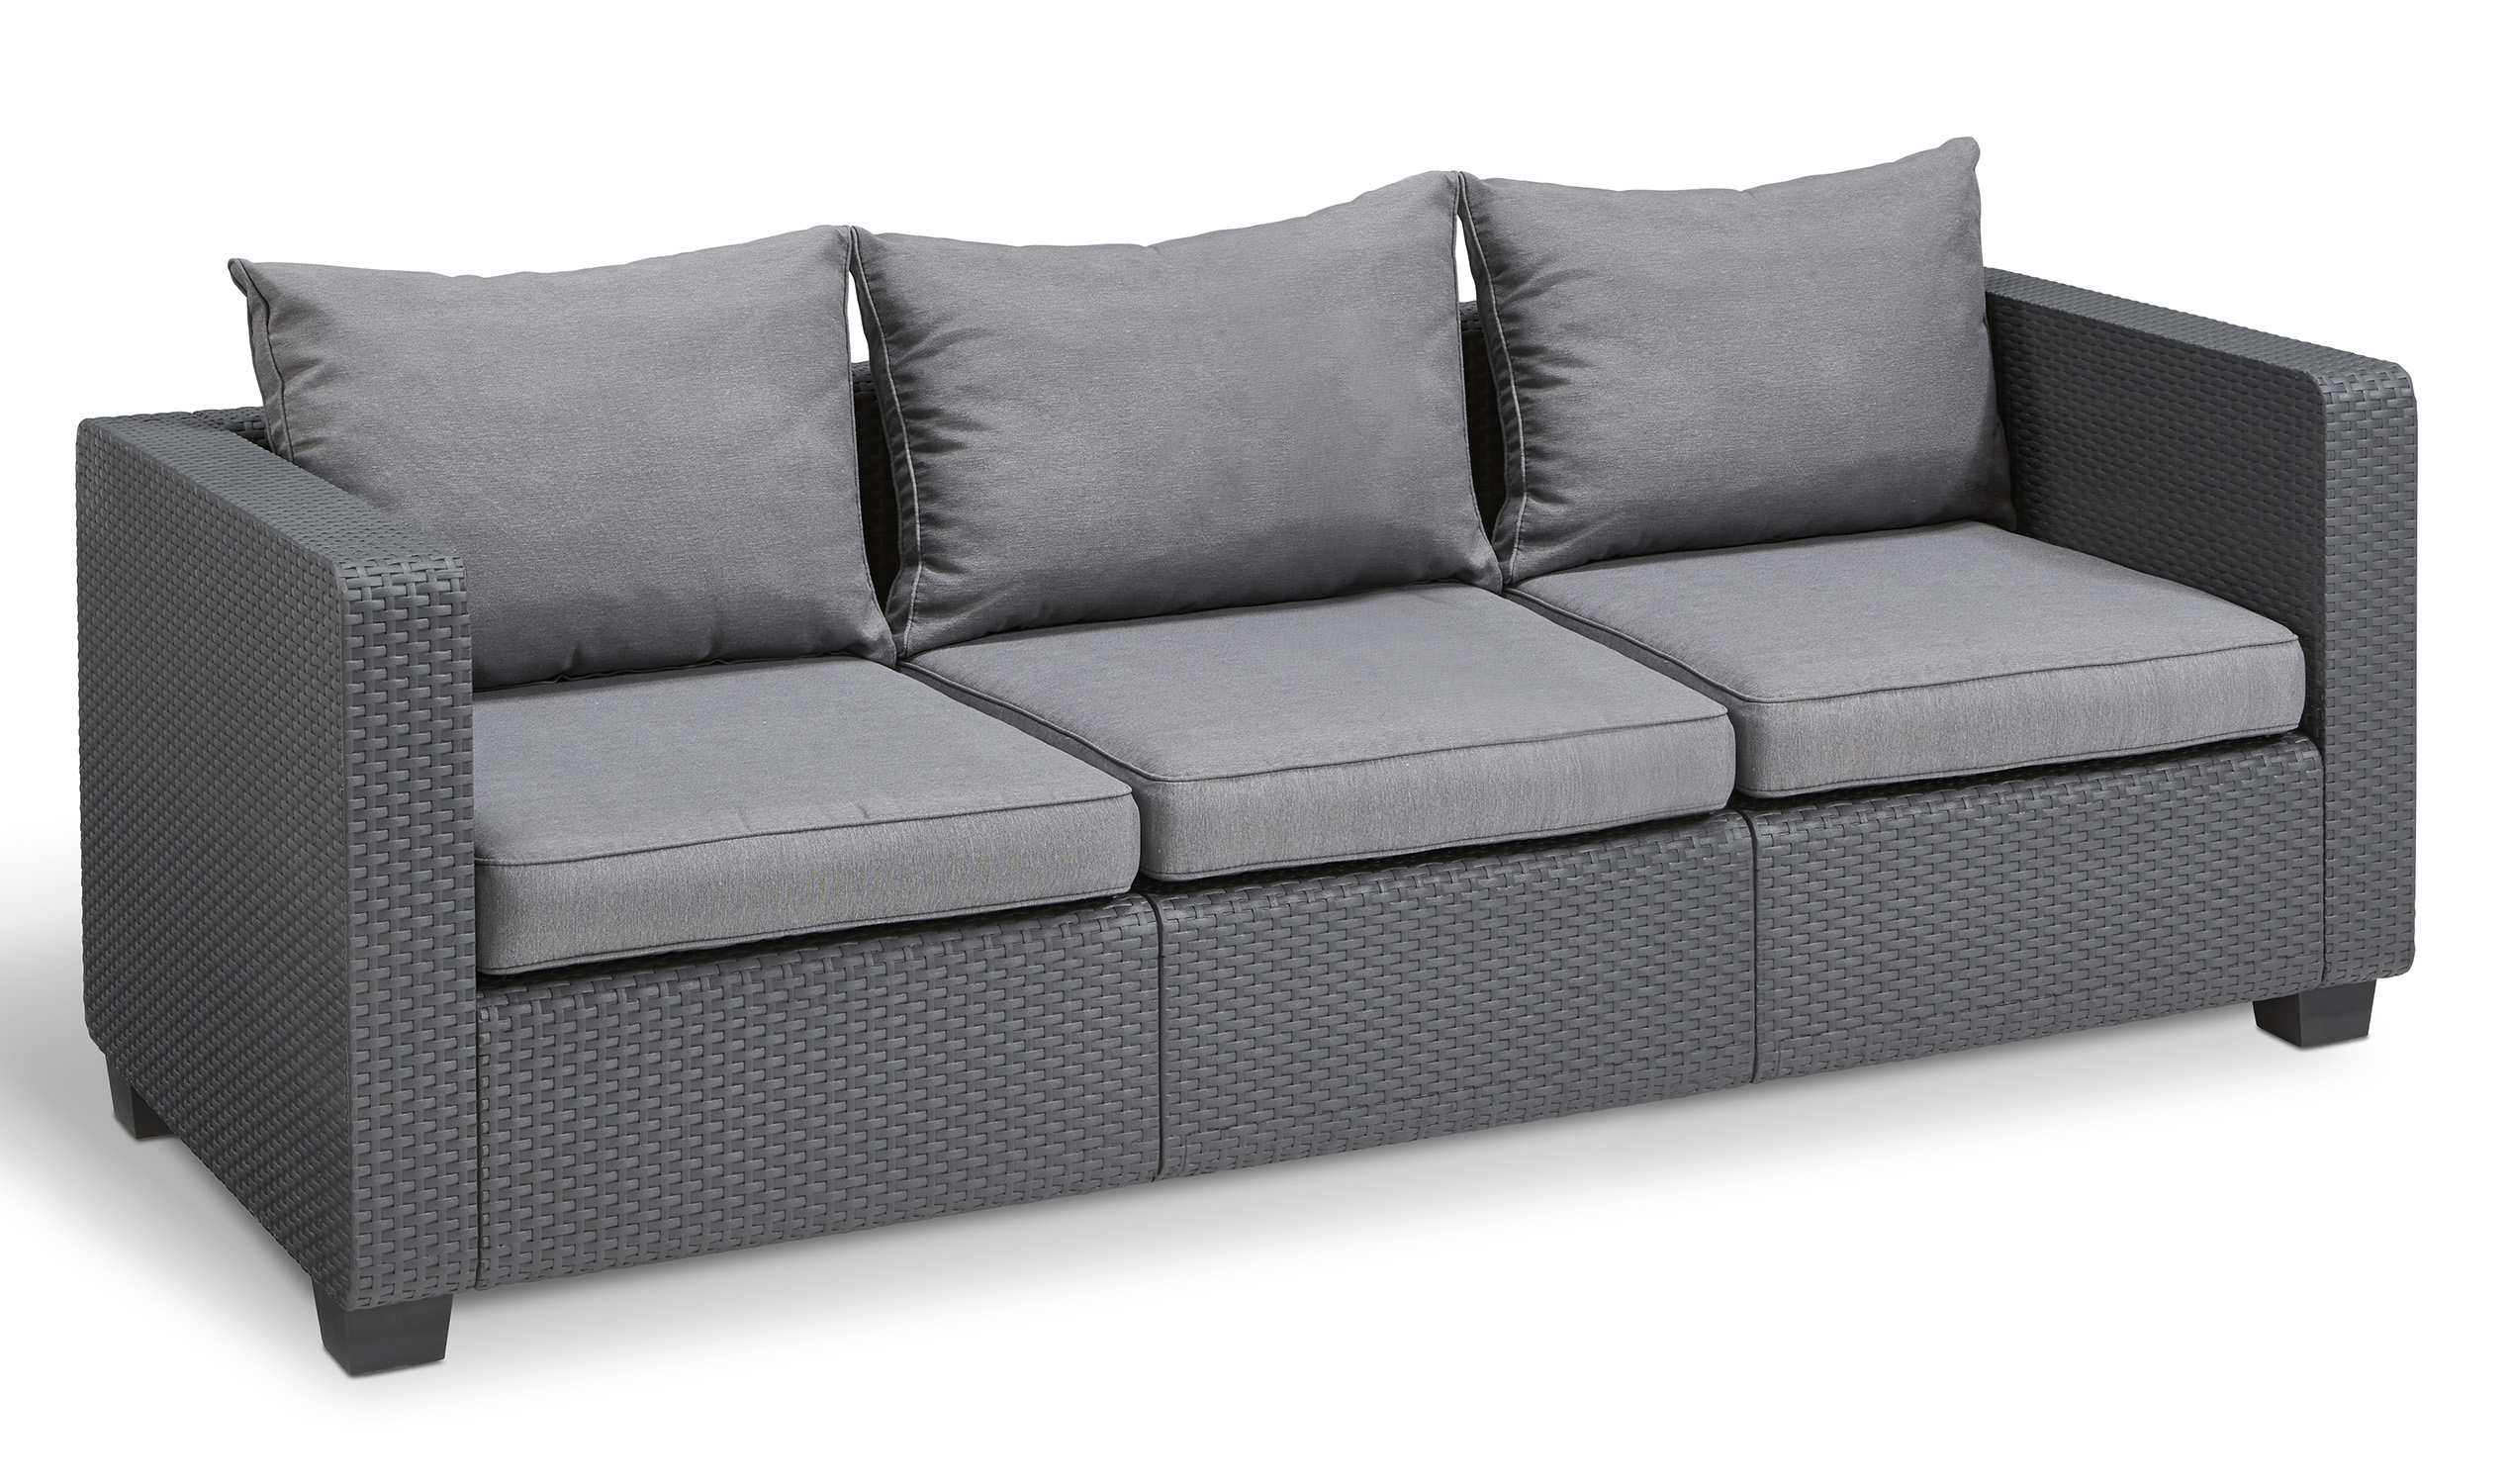 Keter Salta 3 Seat Sofa Gray With Sunbrella Cushions, Resin Outdoor Patio  Furniture